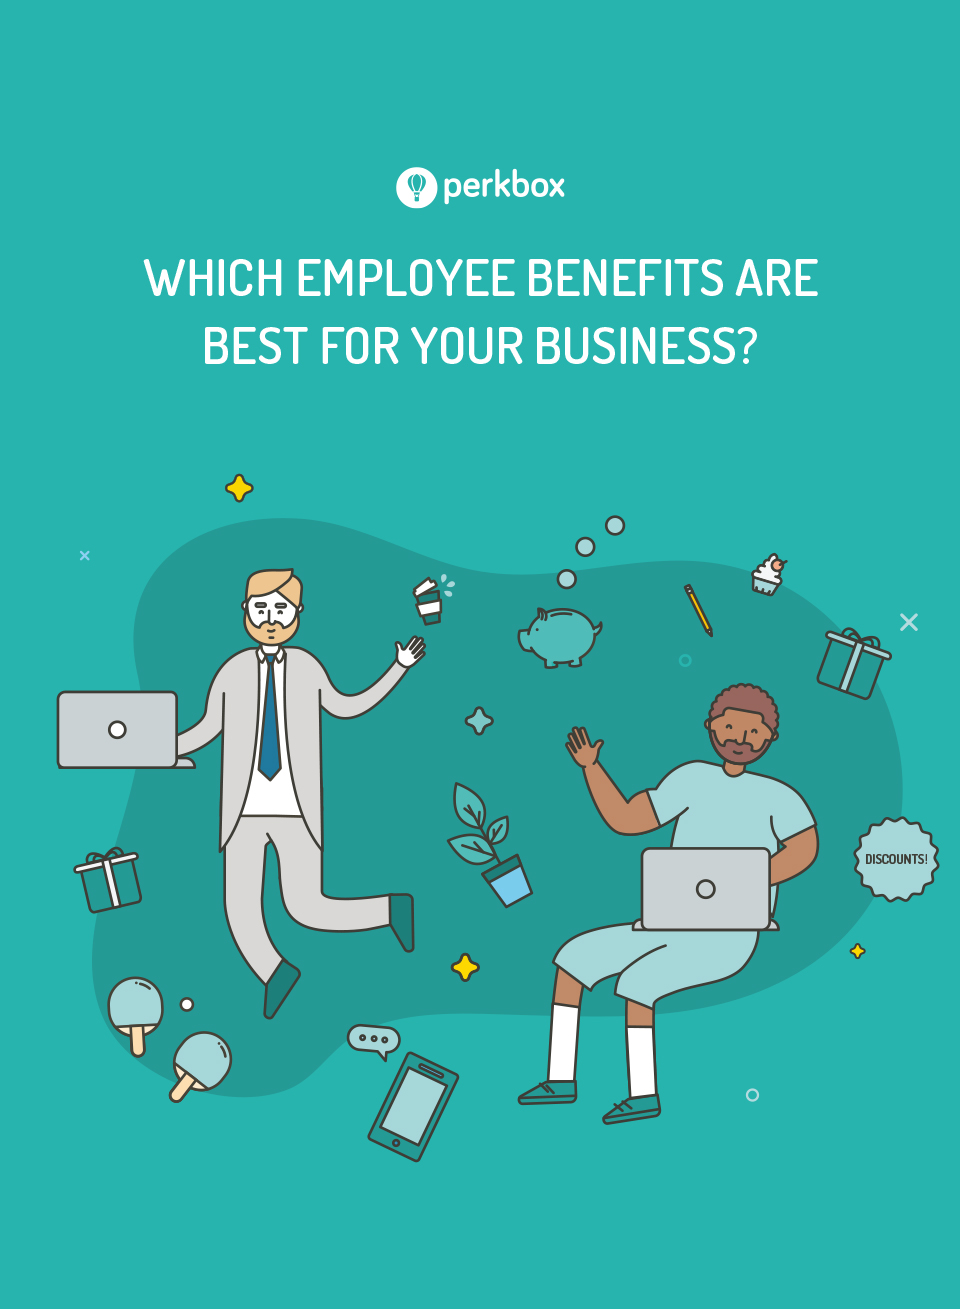 Which employee benefits are best for your business?